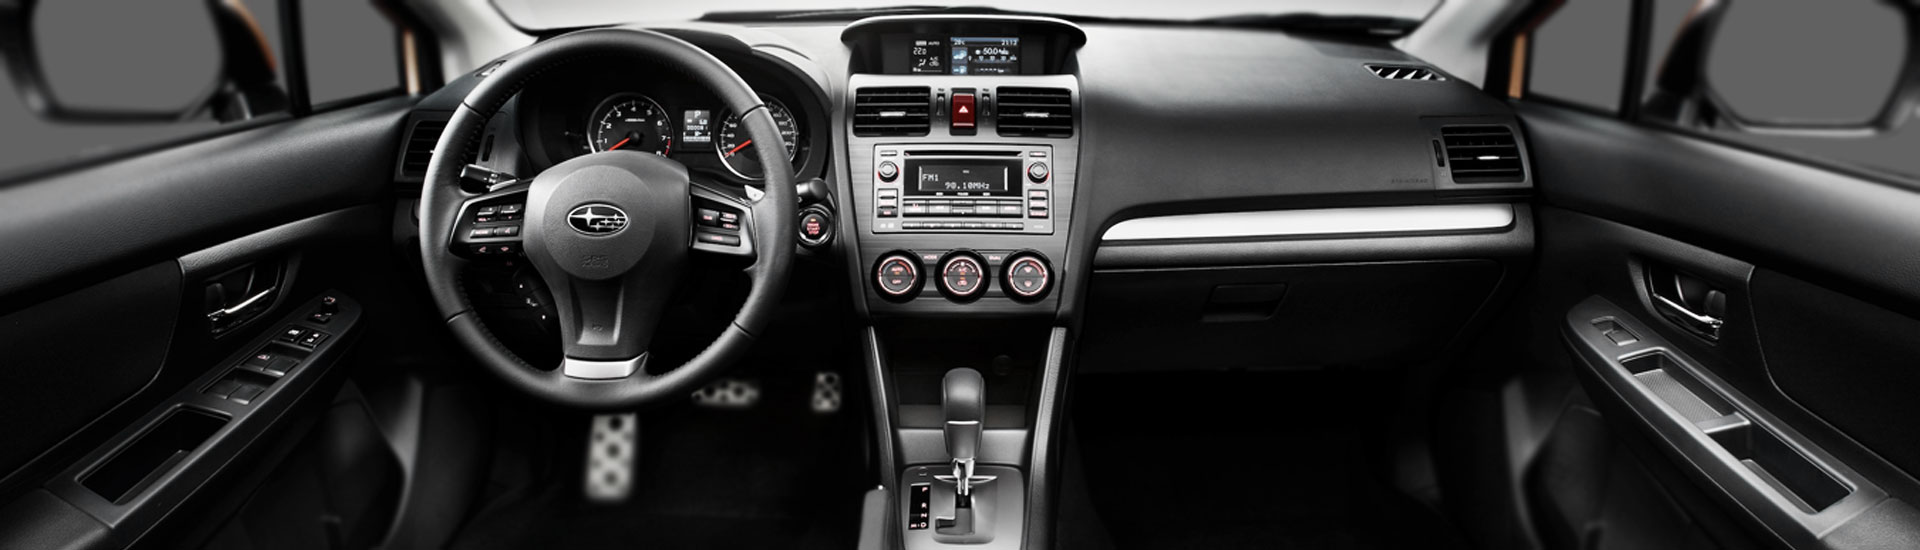 Subaru XV Crosstrek Custom Dash Kits